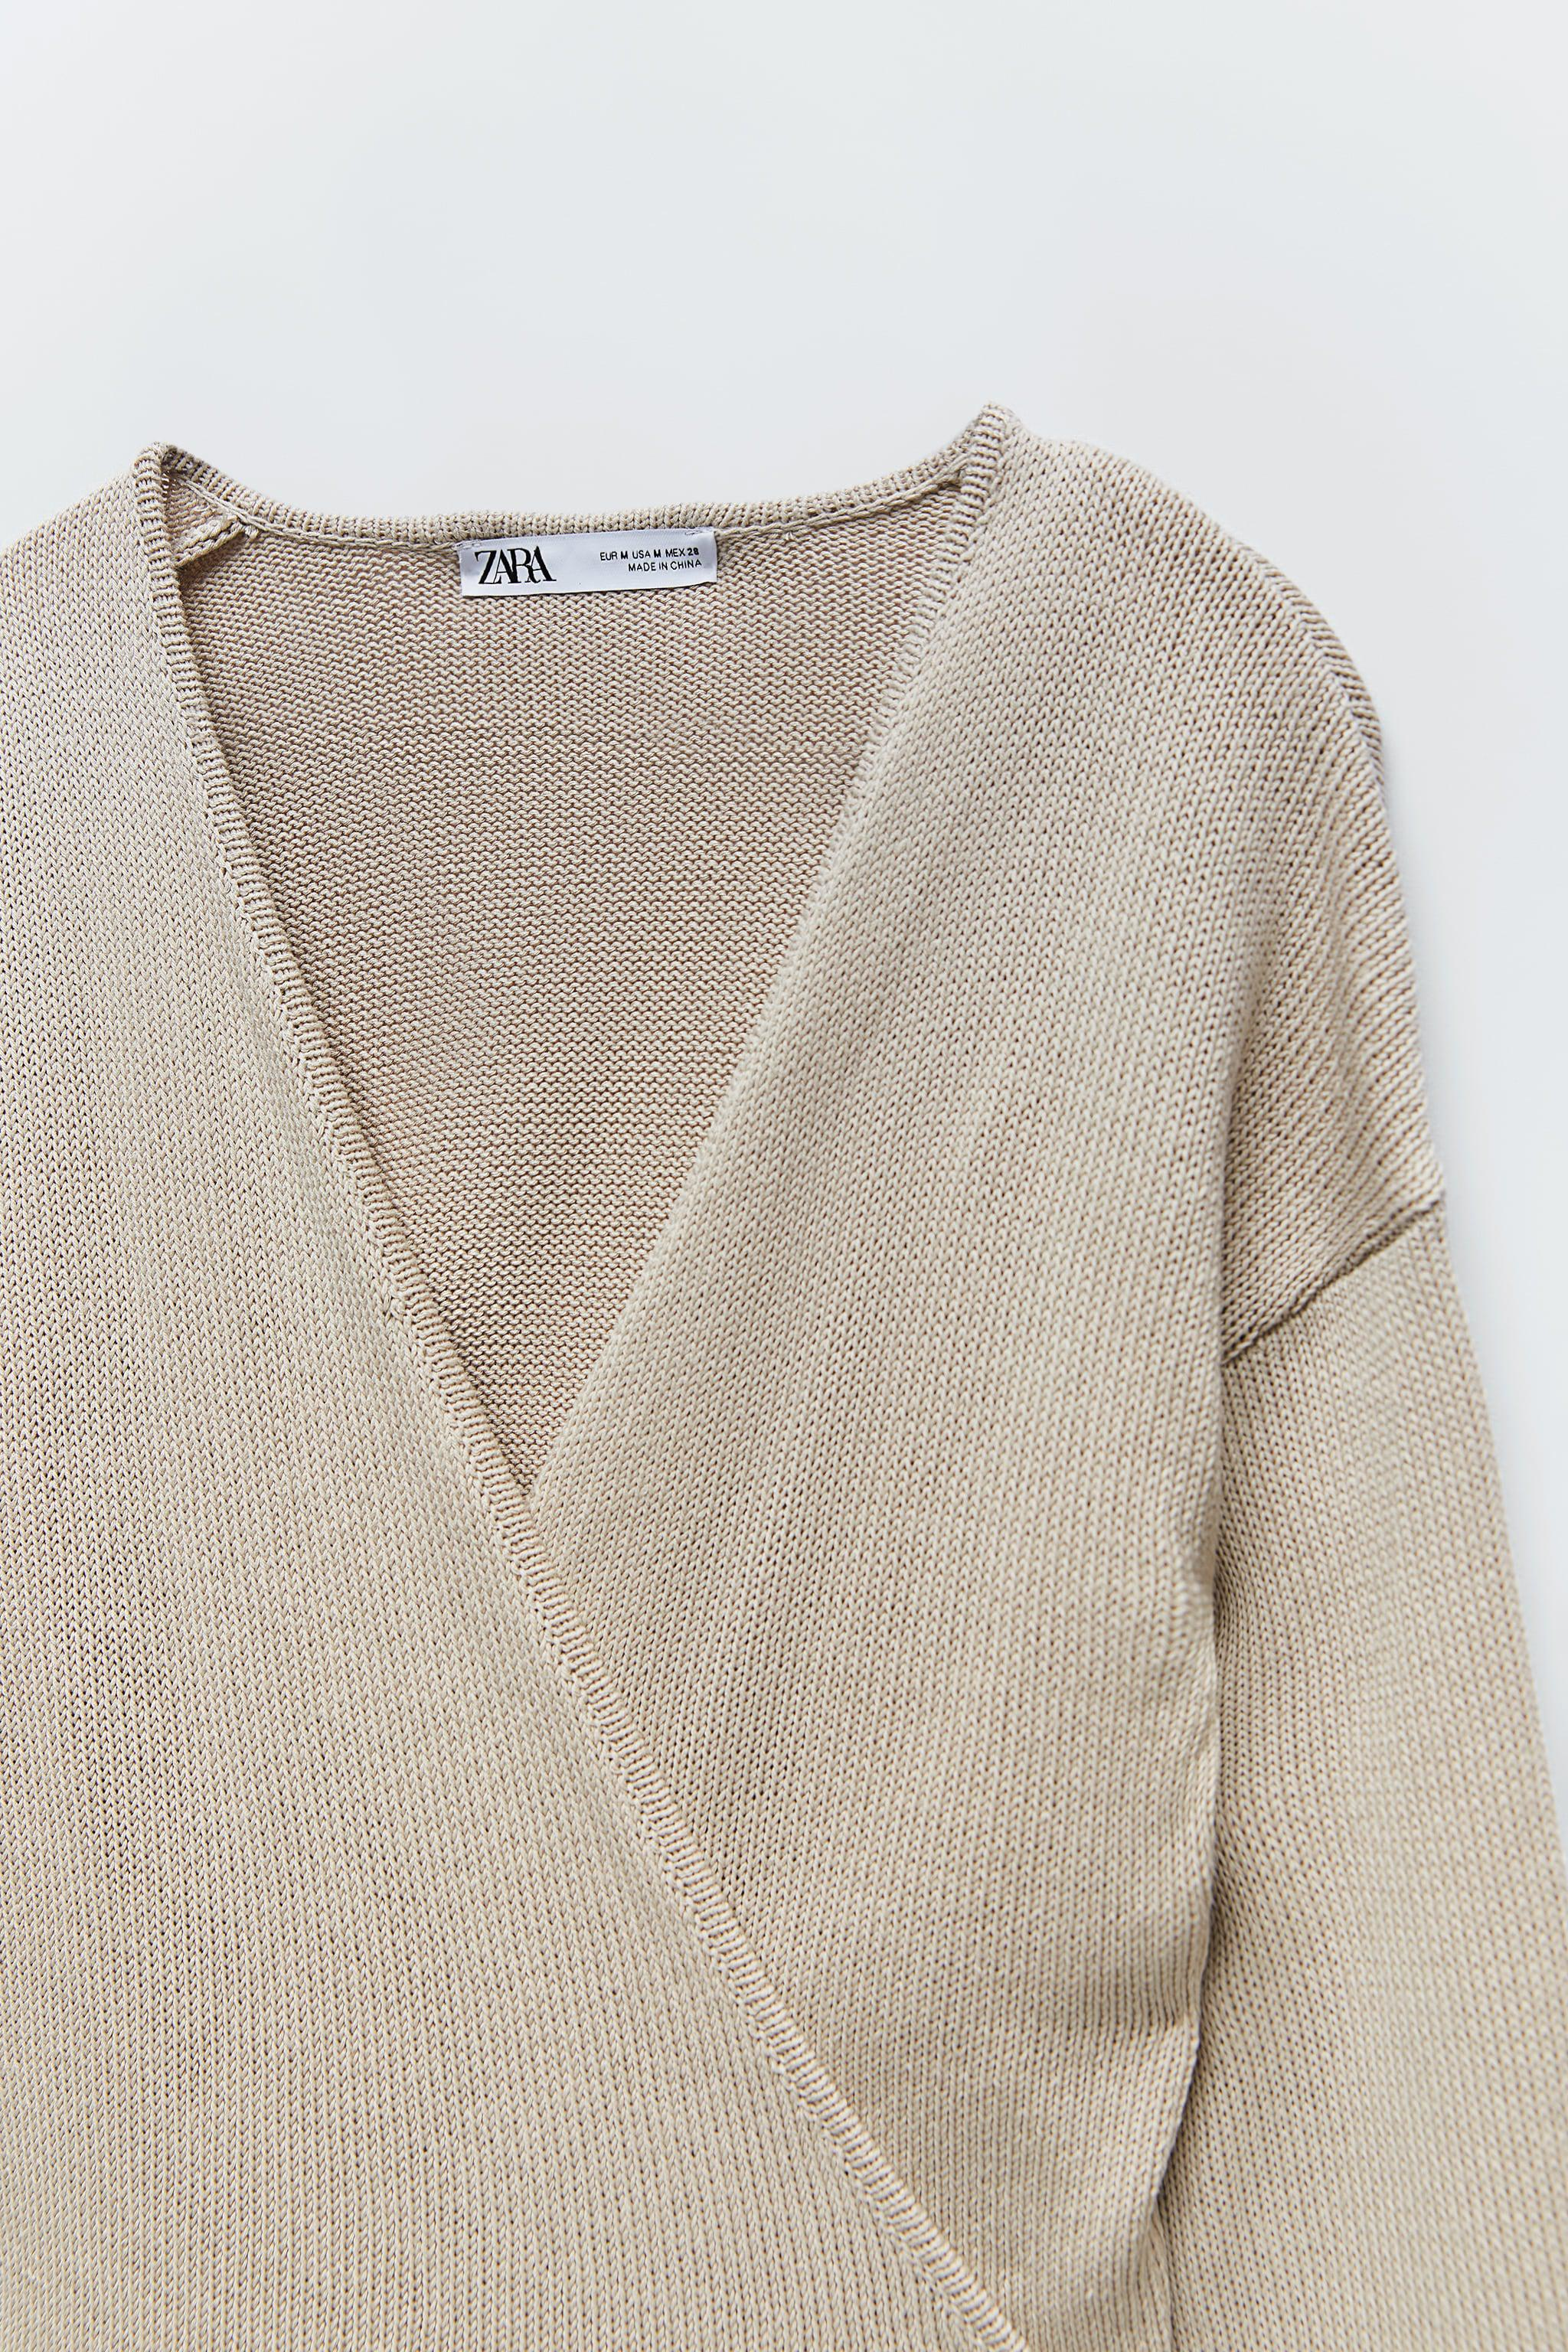 TIED KNIT SWEATER 6